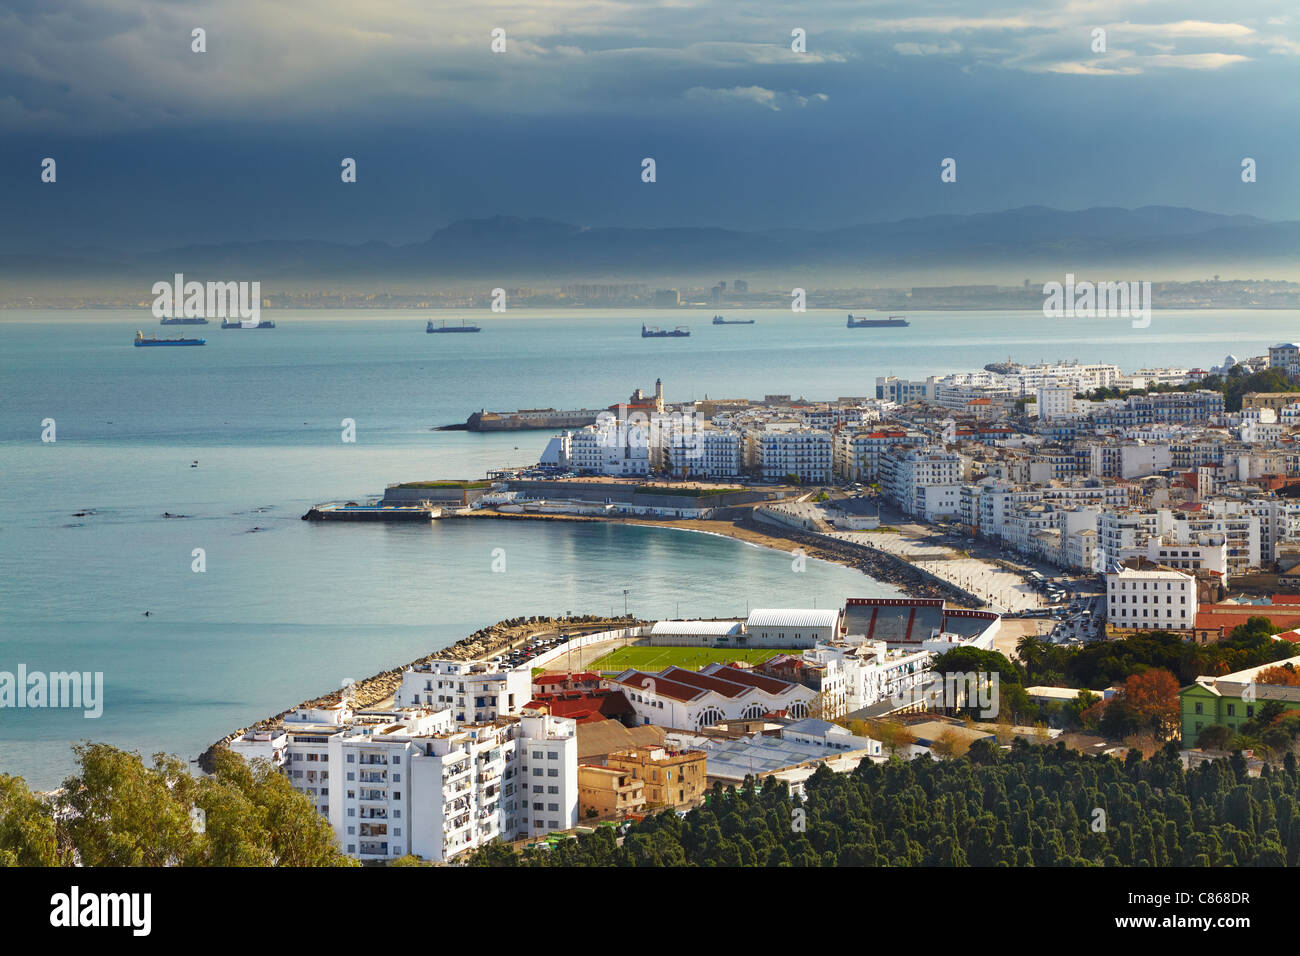 Algiers the capital city of Algeria, Northern Africa - Stock Image